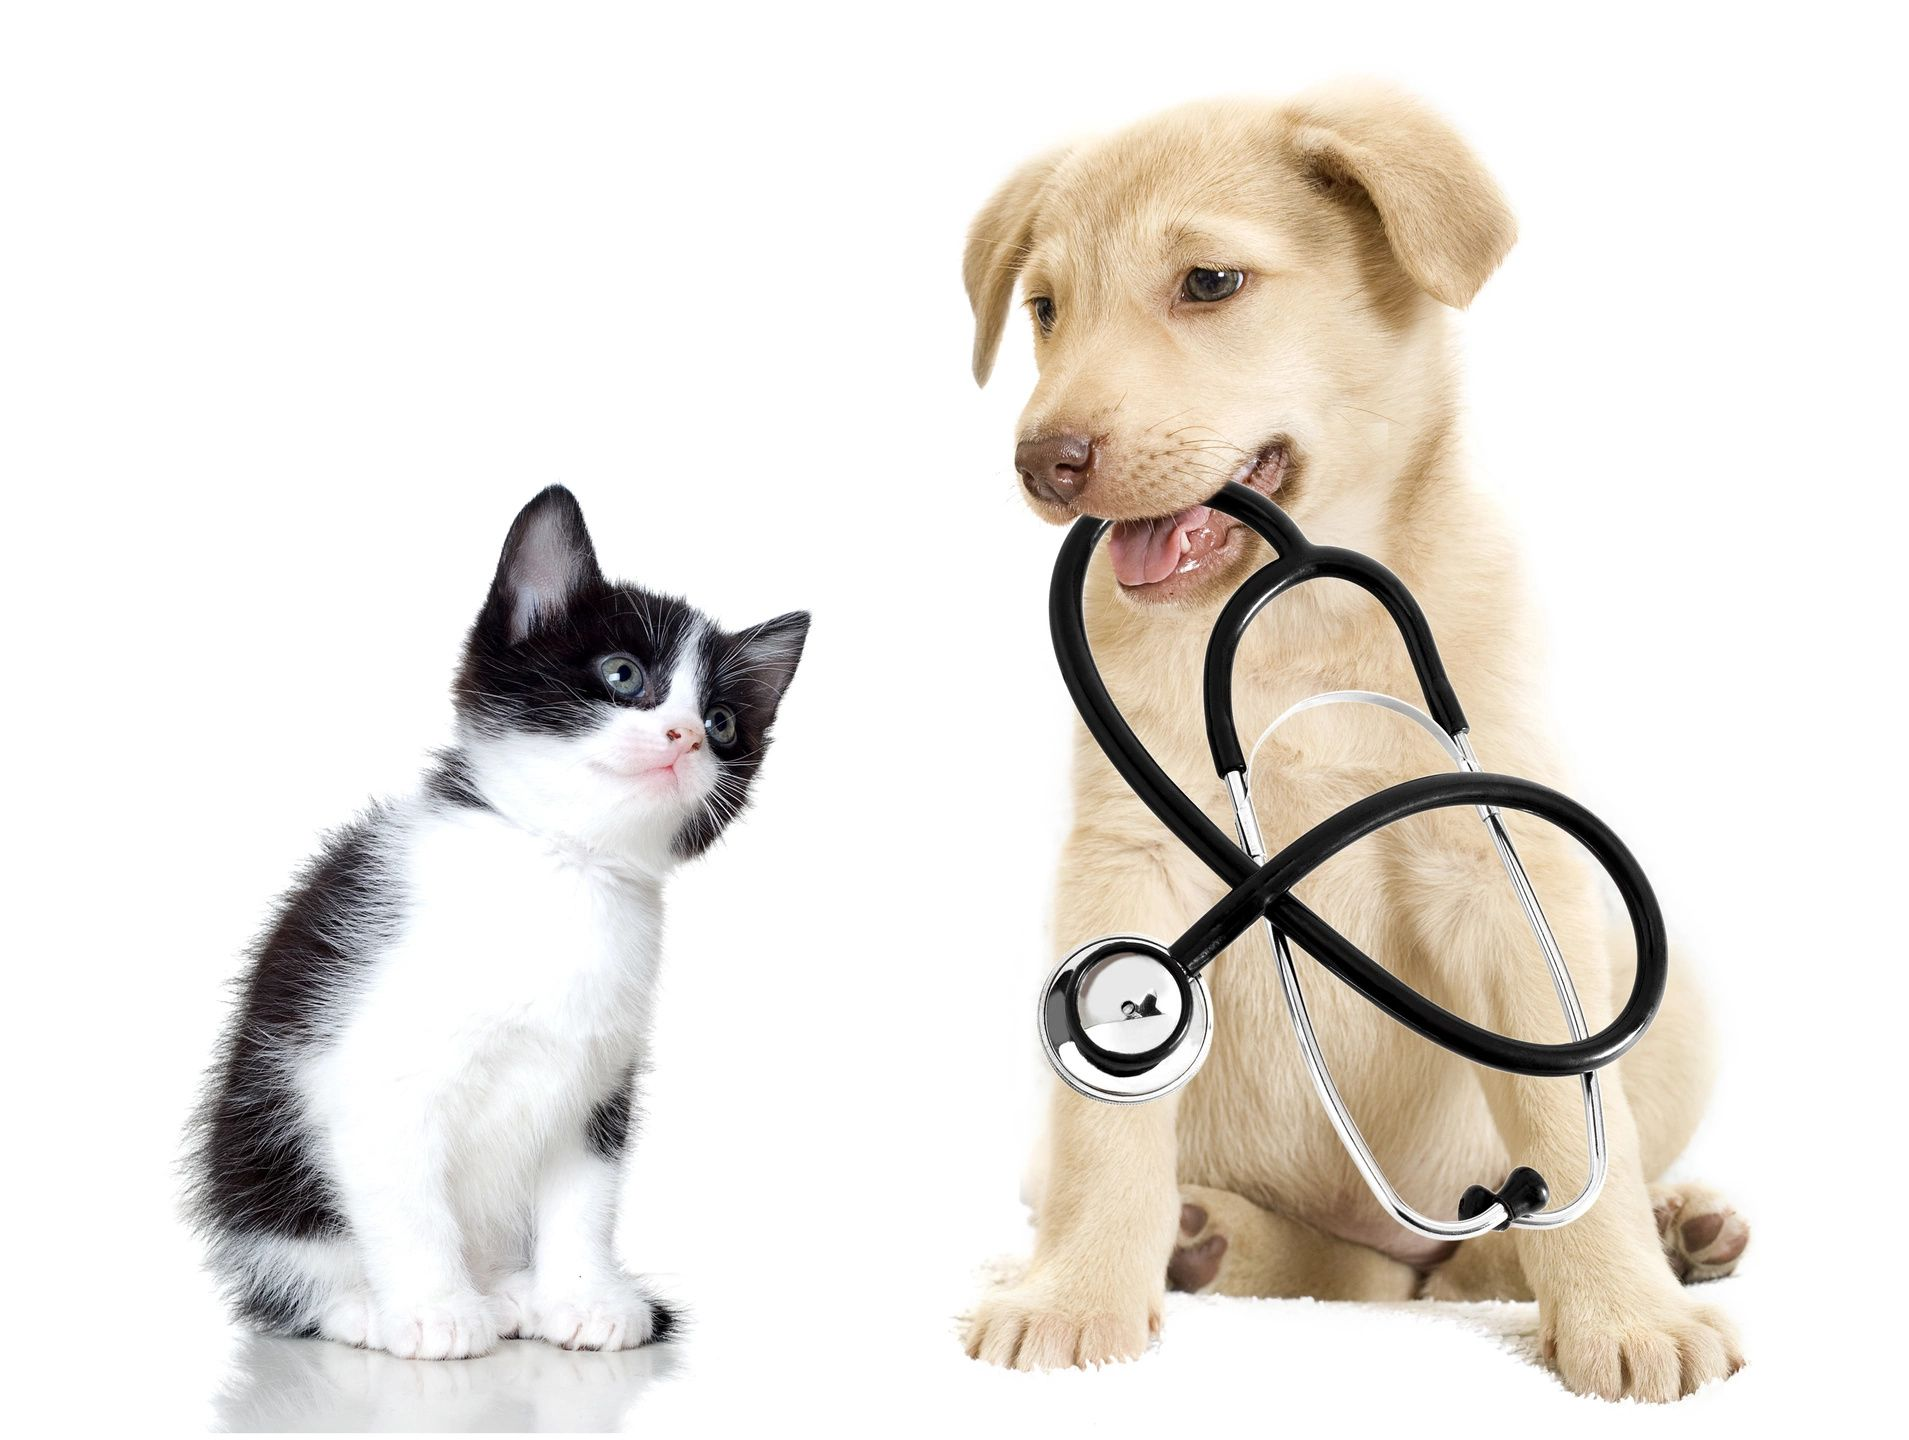 Animals with stethoscope